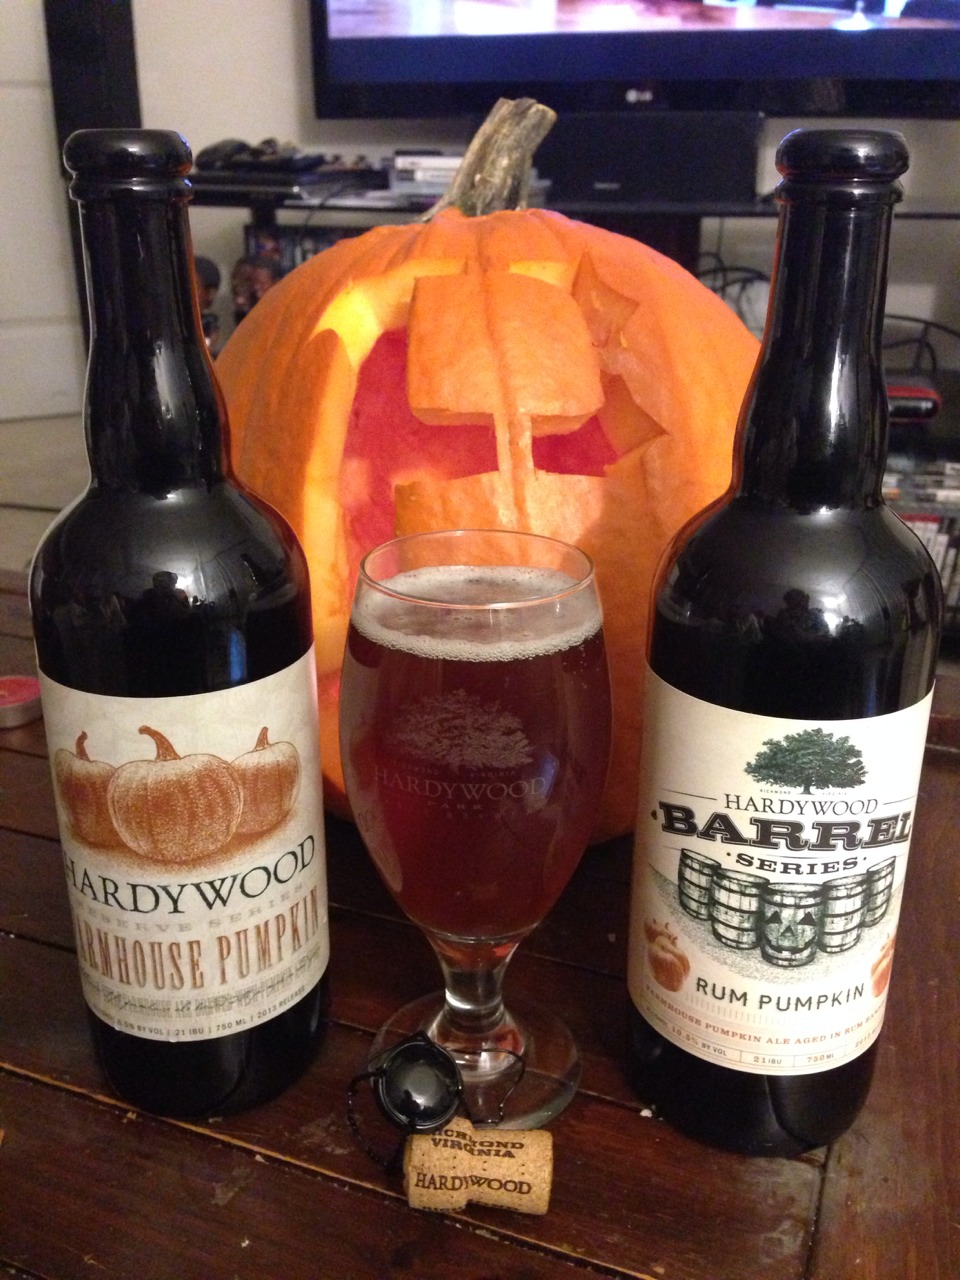 Better From The Barrel: Hardywood Farmhouse and Rum Pumpkin